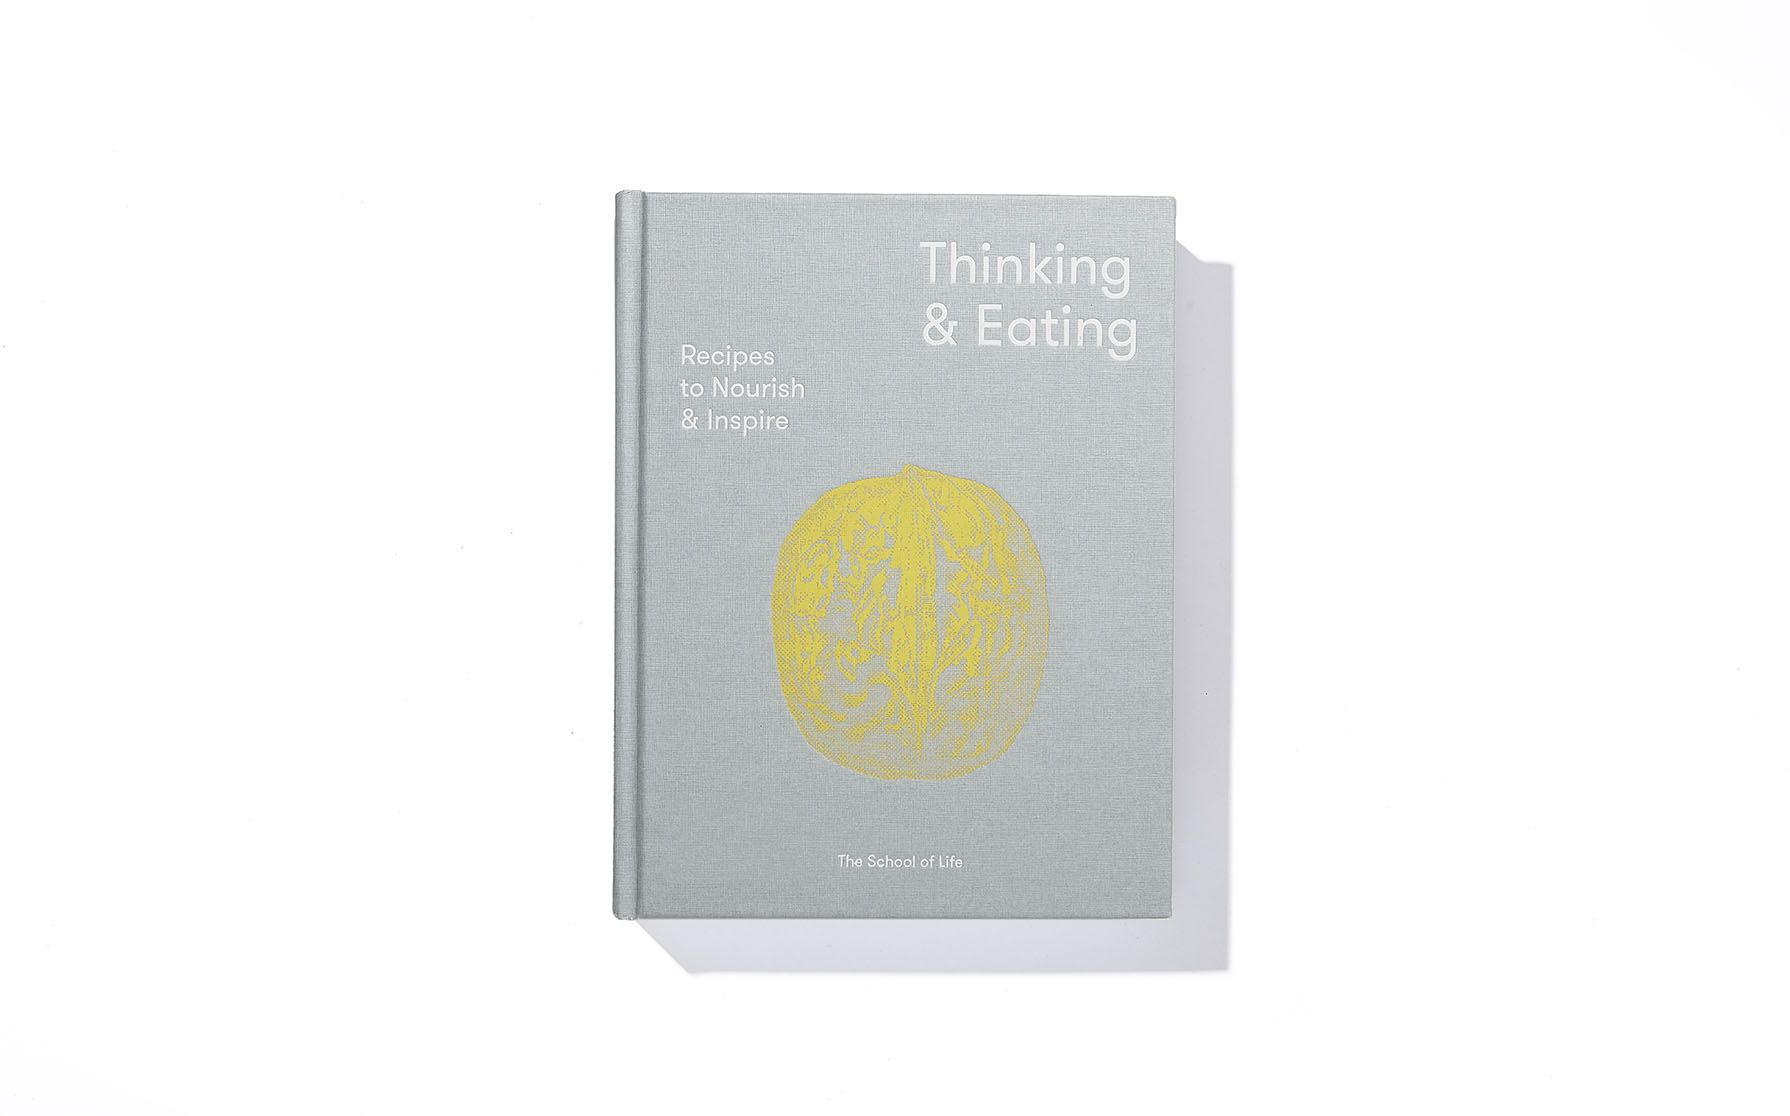 Thinking & Eating